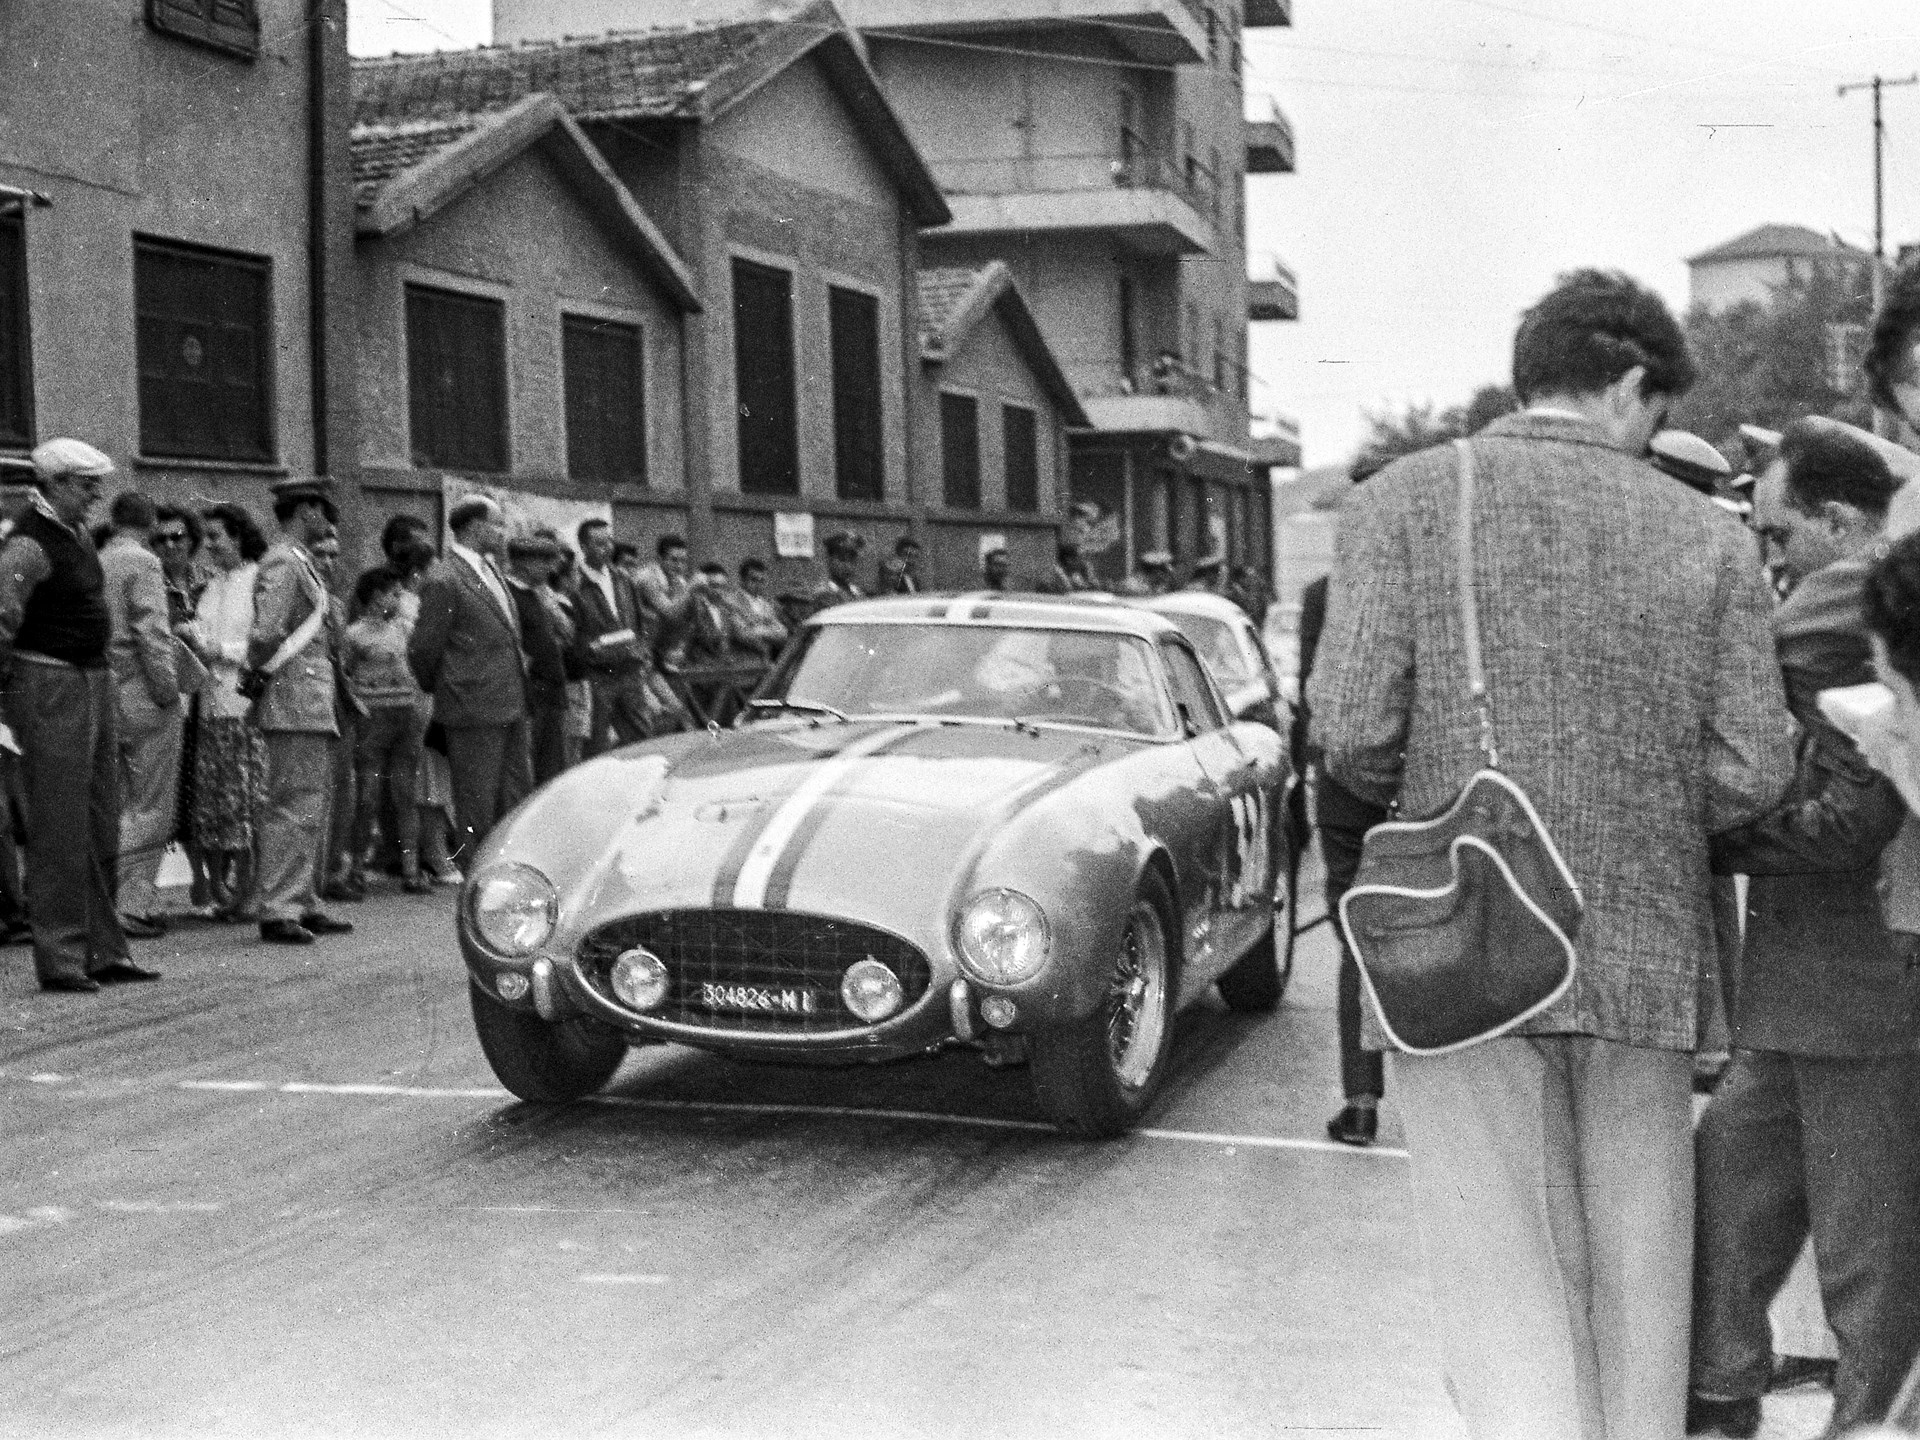 Ottavio Randaccio at the starting line of the Pontedecimo-Giovi Hillclimb in 1957, where he finished 3rd in class.